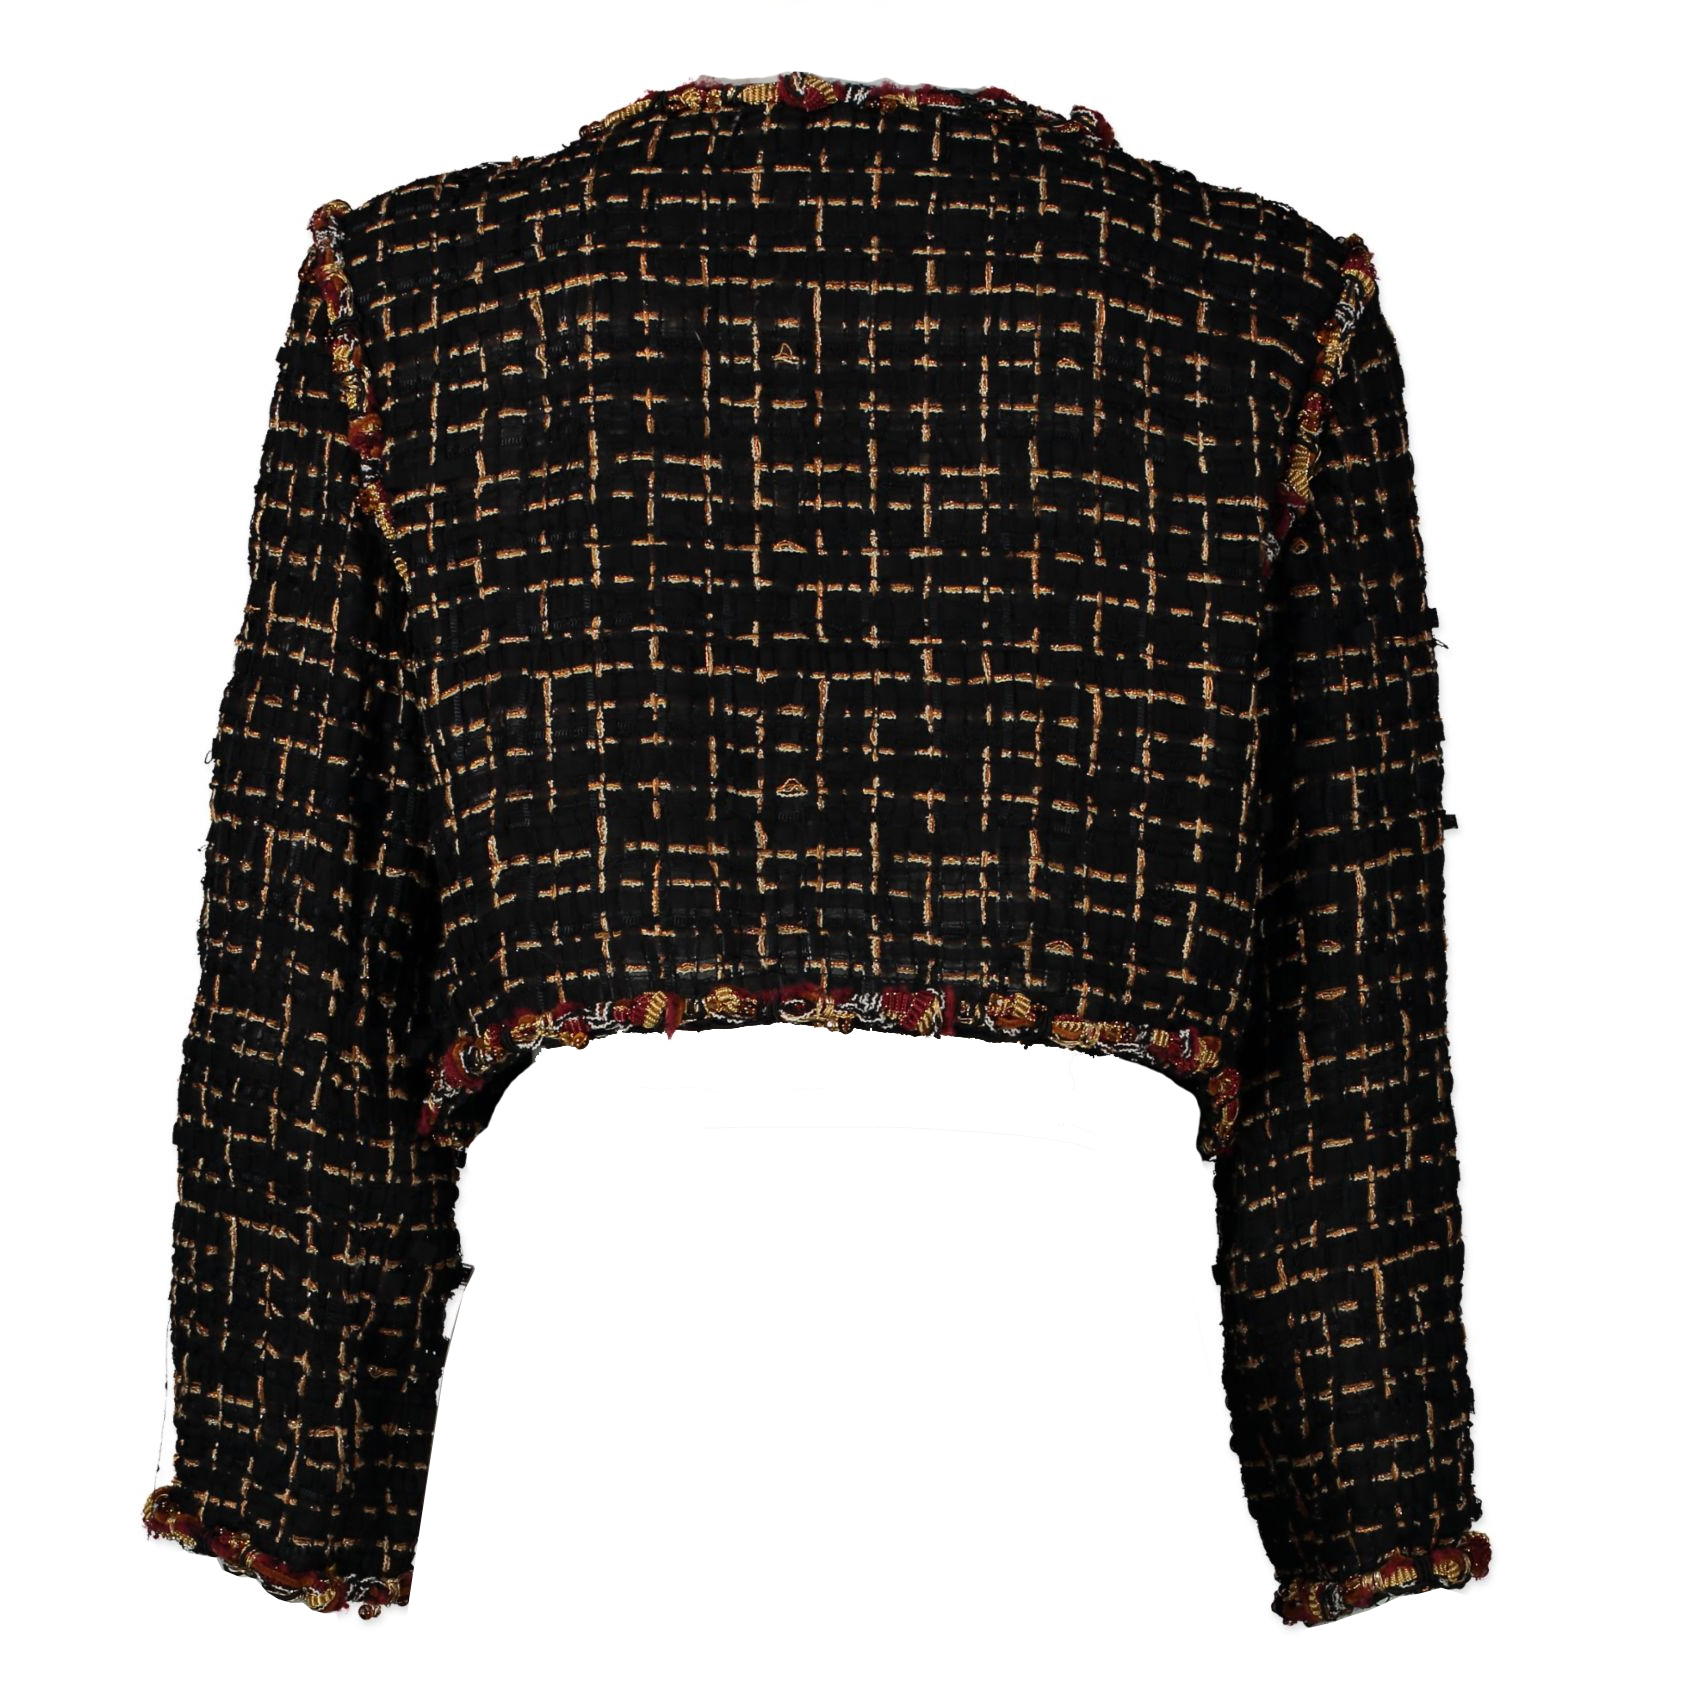 Chanel Black Tweed Jacket for the best price at Labellov secondhand luxury